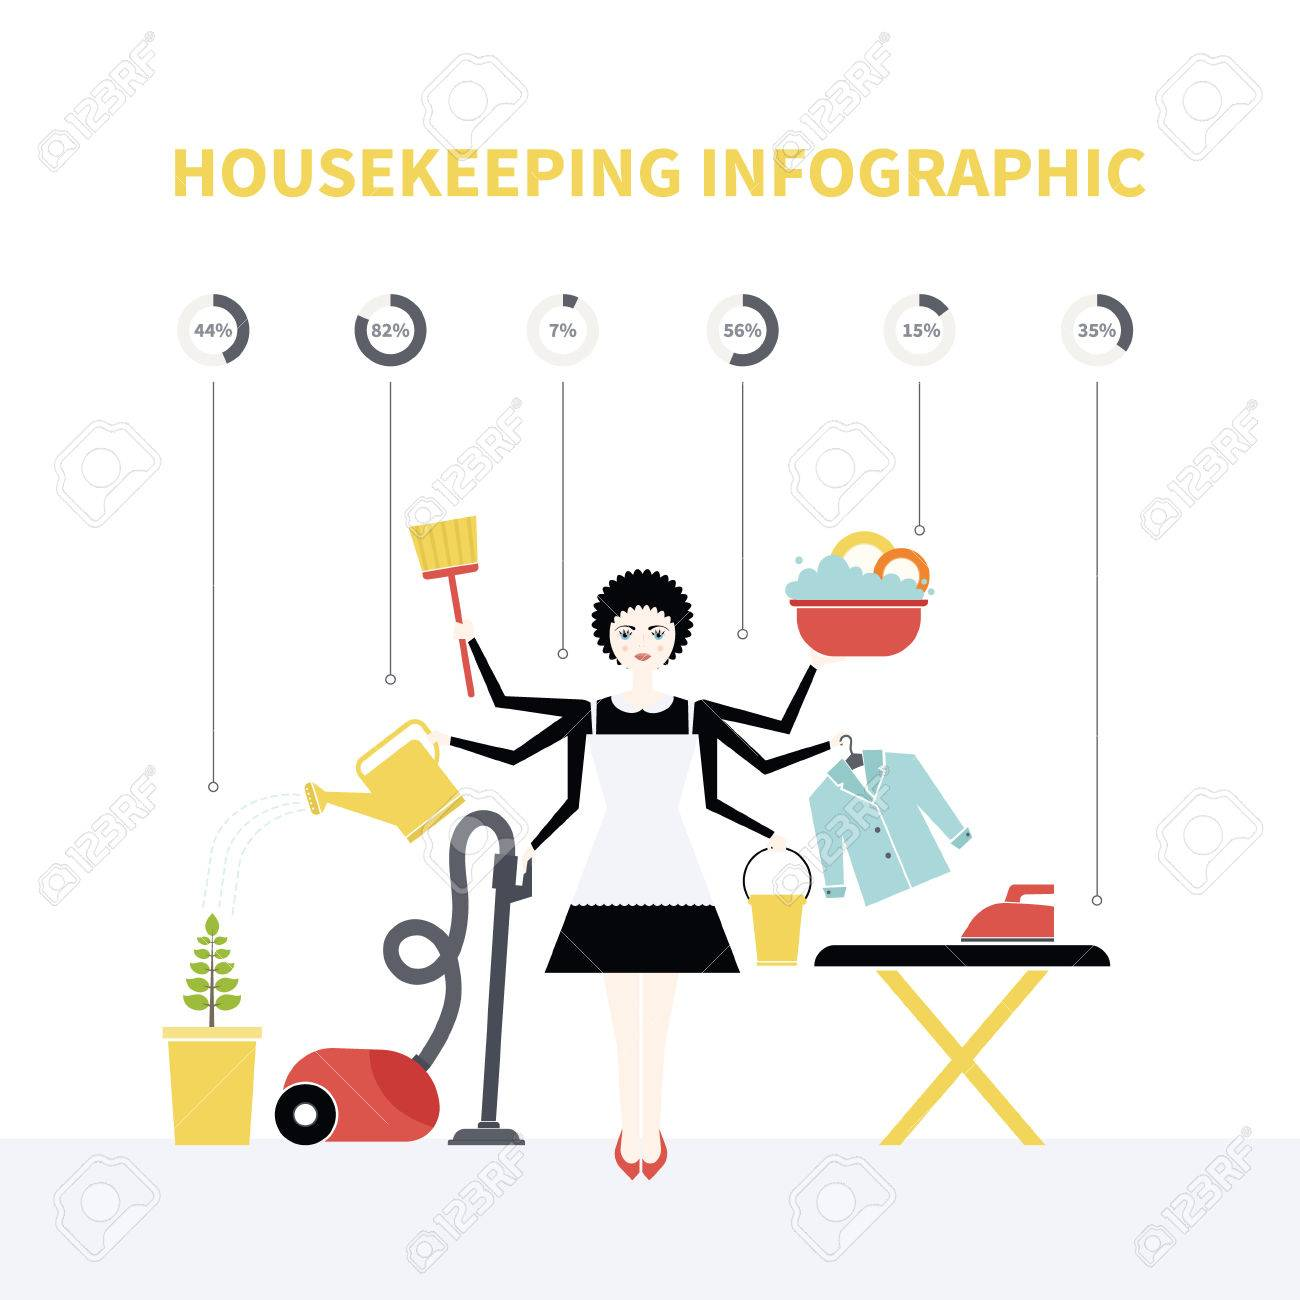 34220244-house-cleaning-infographic-hous